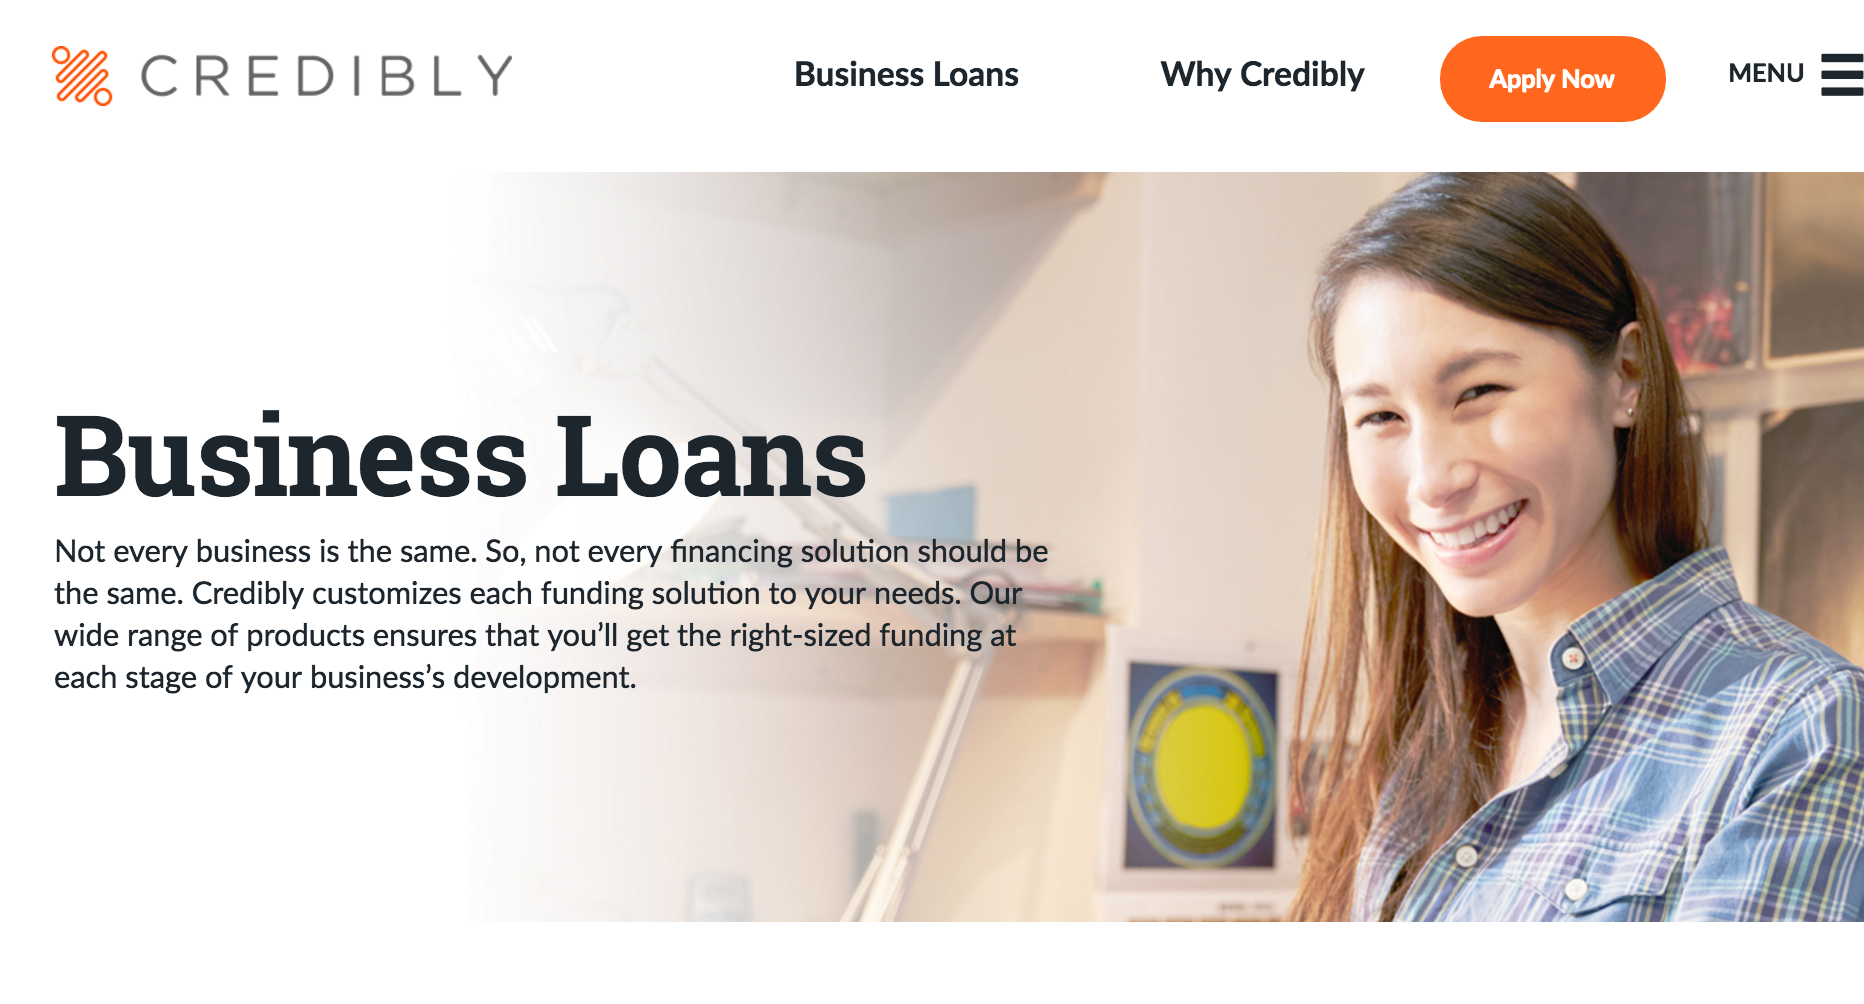 credibly business loans